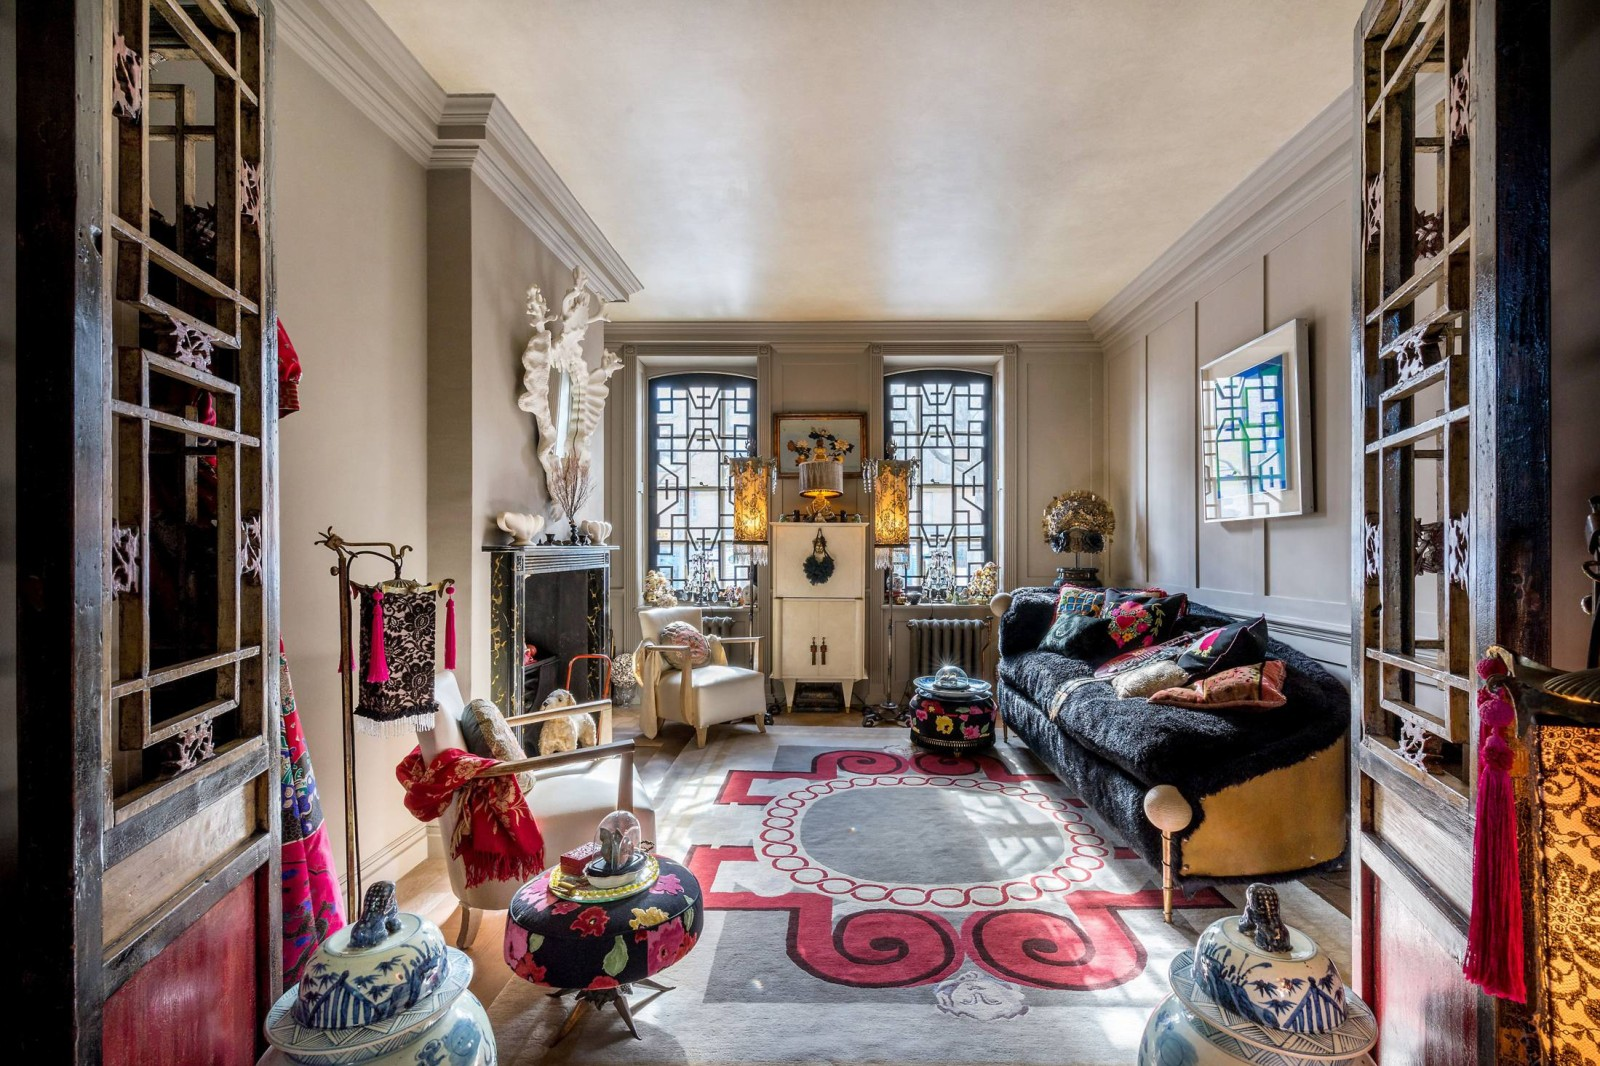 50 best hotels in London - Time Out London